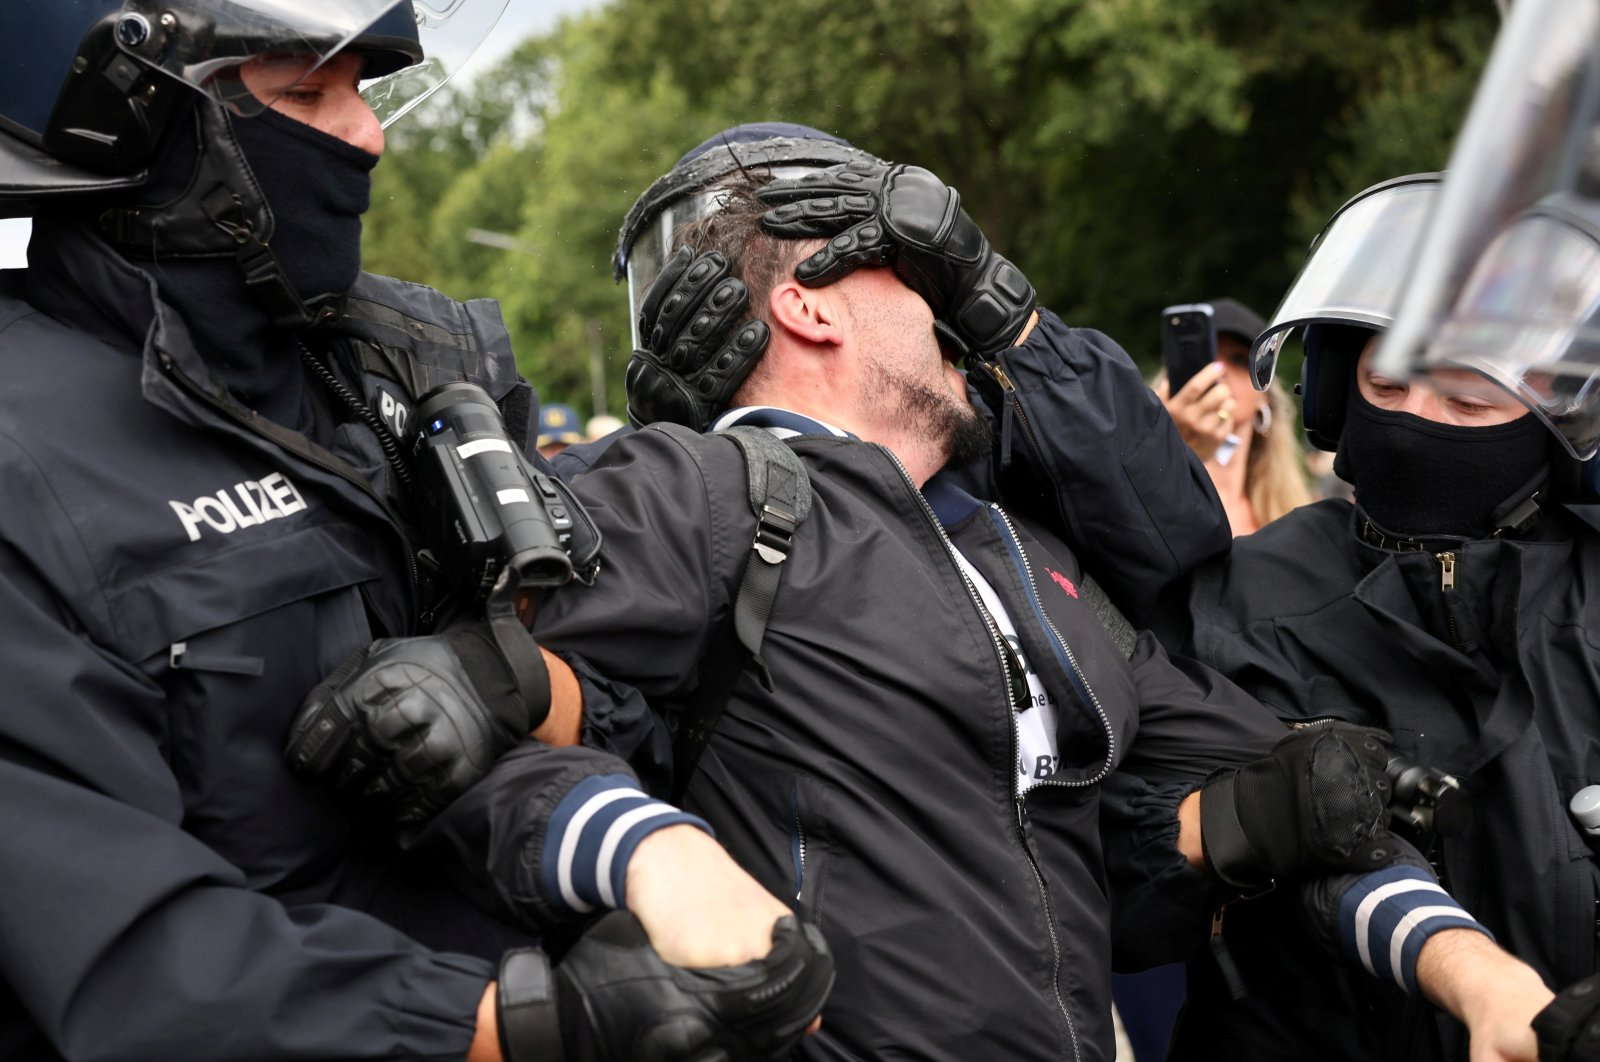 Police officers detain a demonstrator during a protest against government measures to curb the spread of coronavirus disease in Berlin, Germany Aug. 1, 2021. (Reuters Photo)